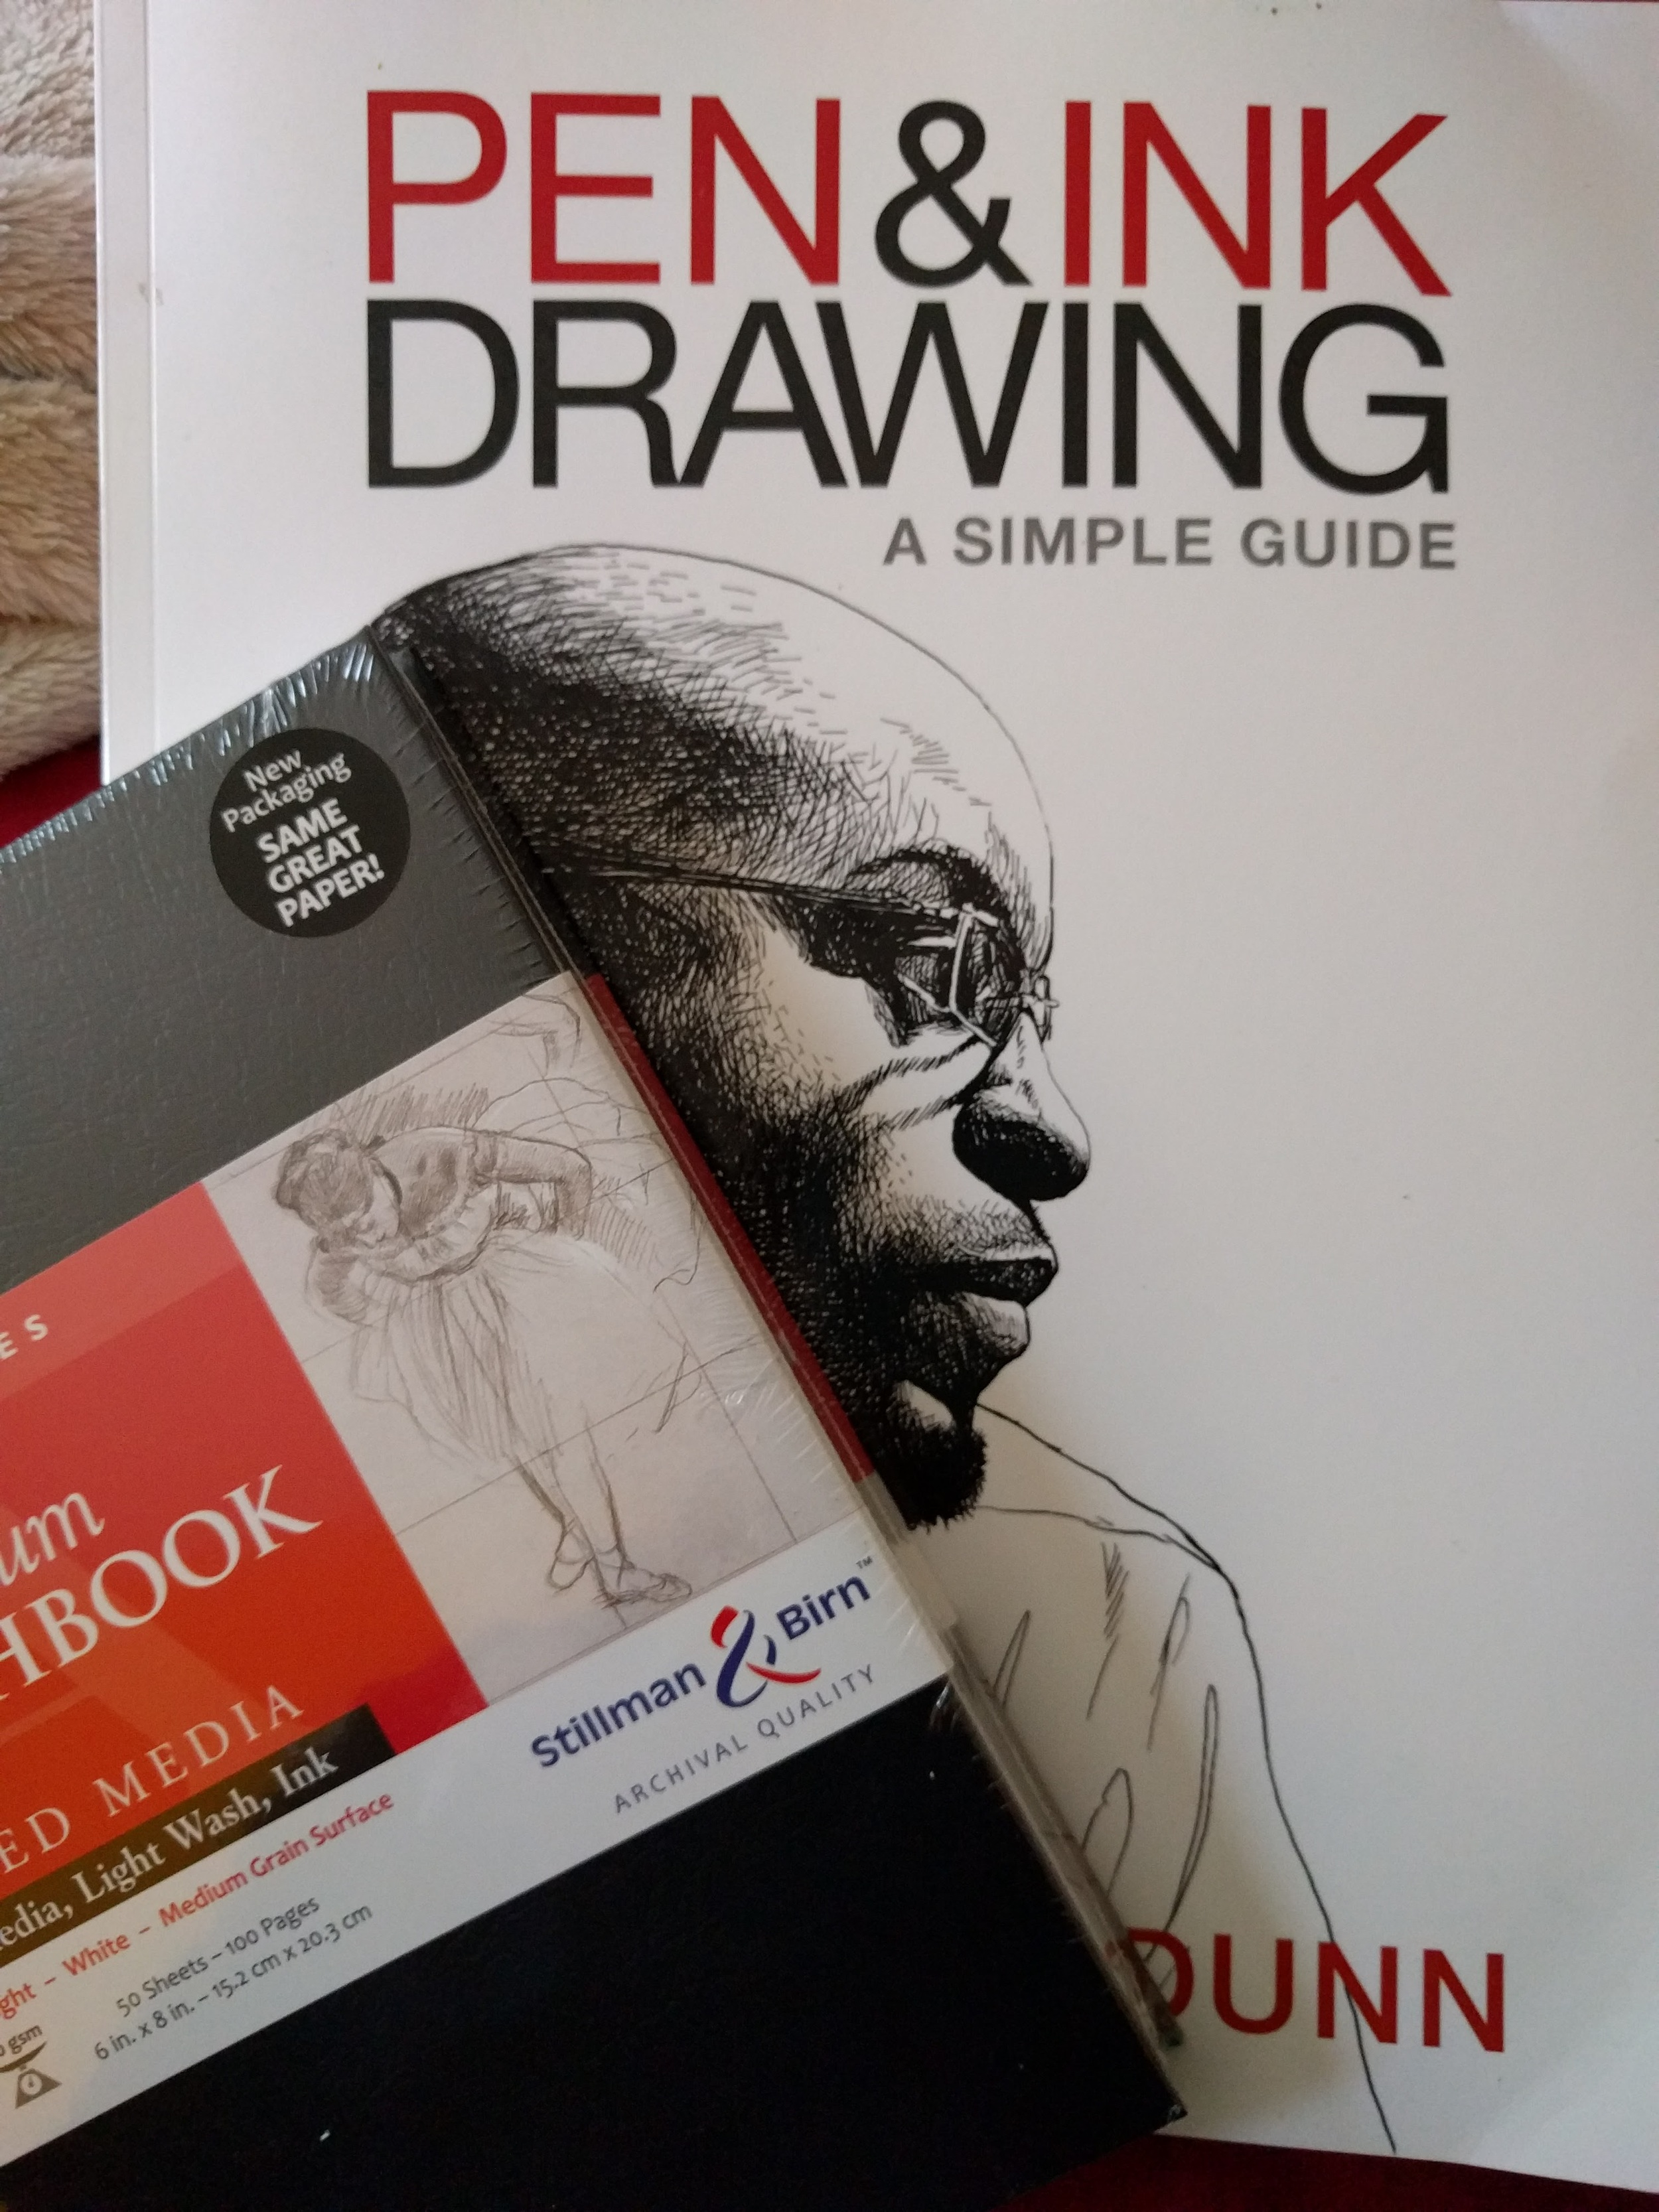 Pen and Ink Drawing: A Simple Guide by Alphonso Dunn